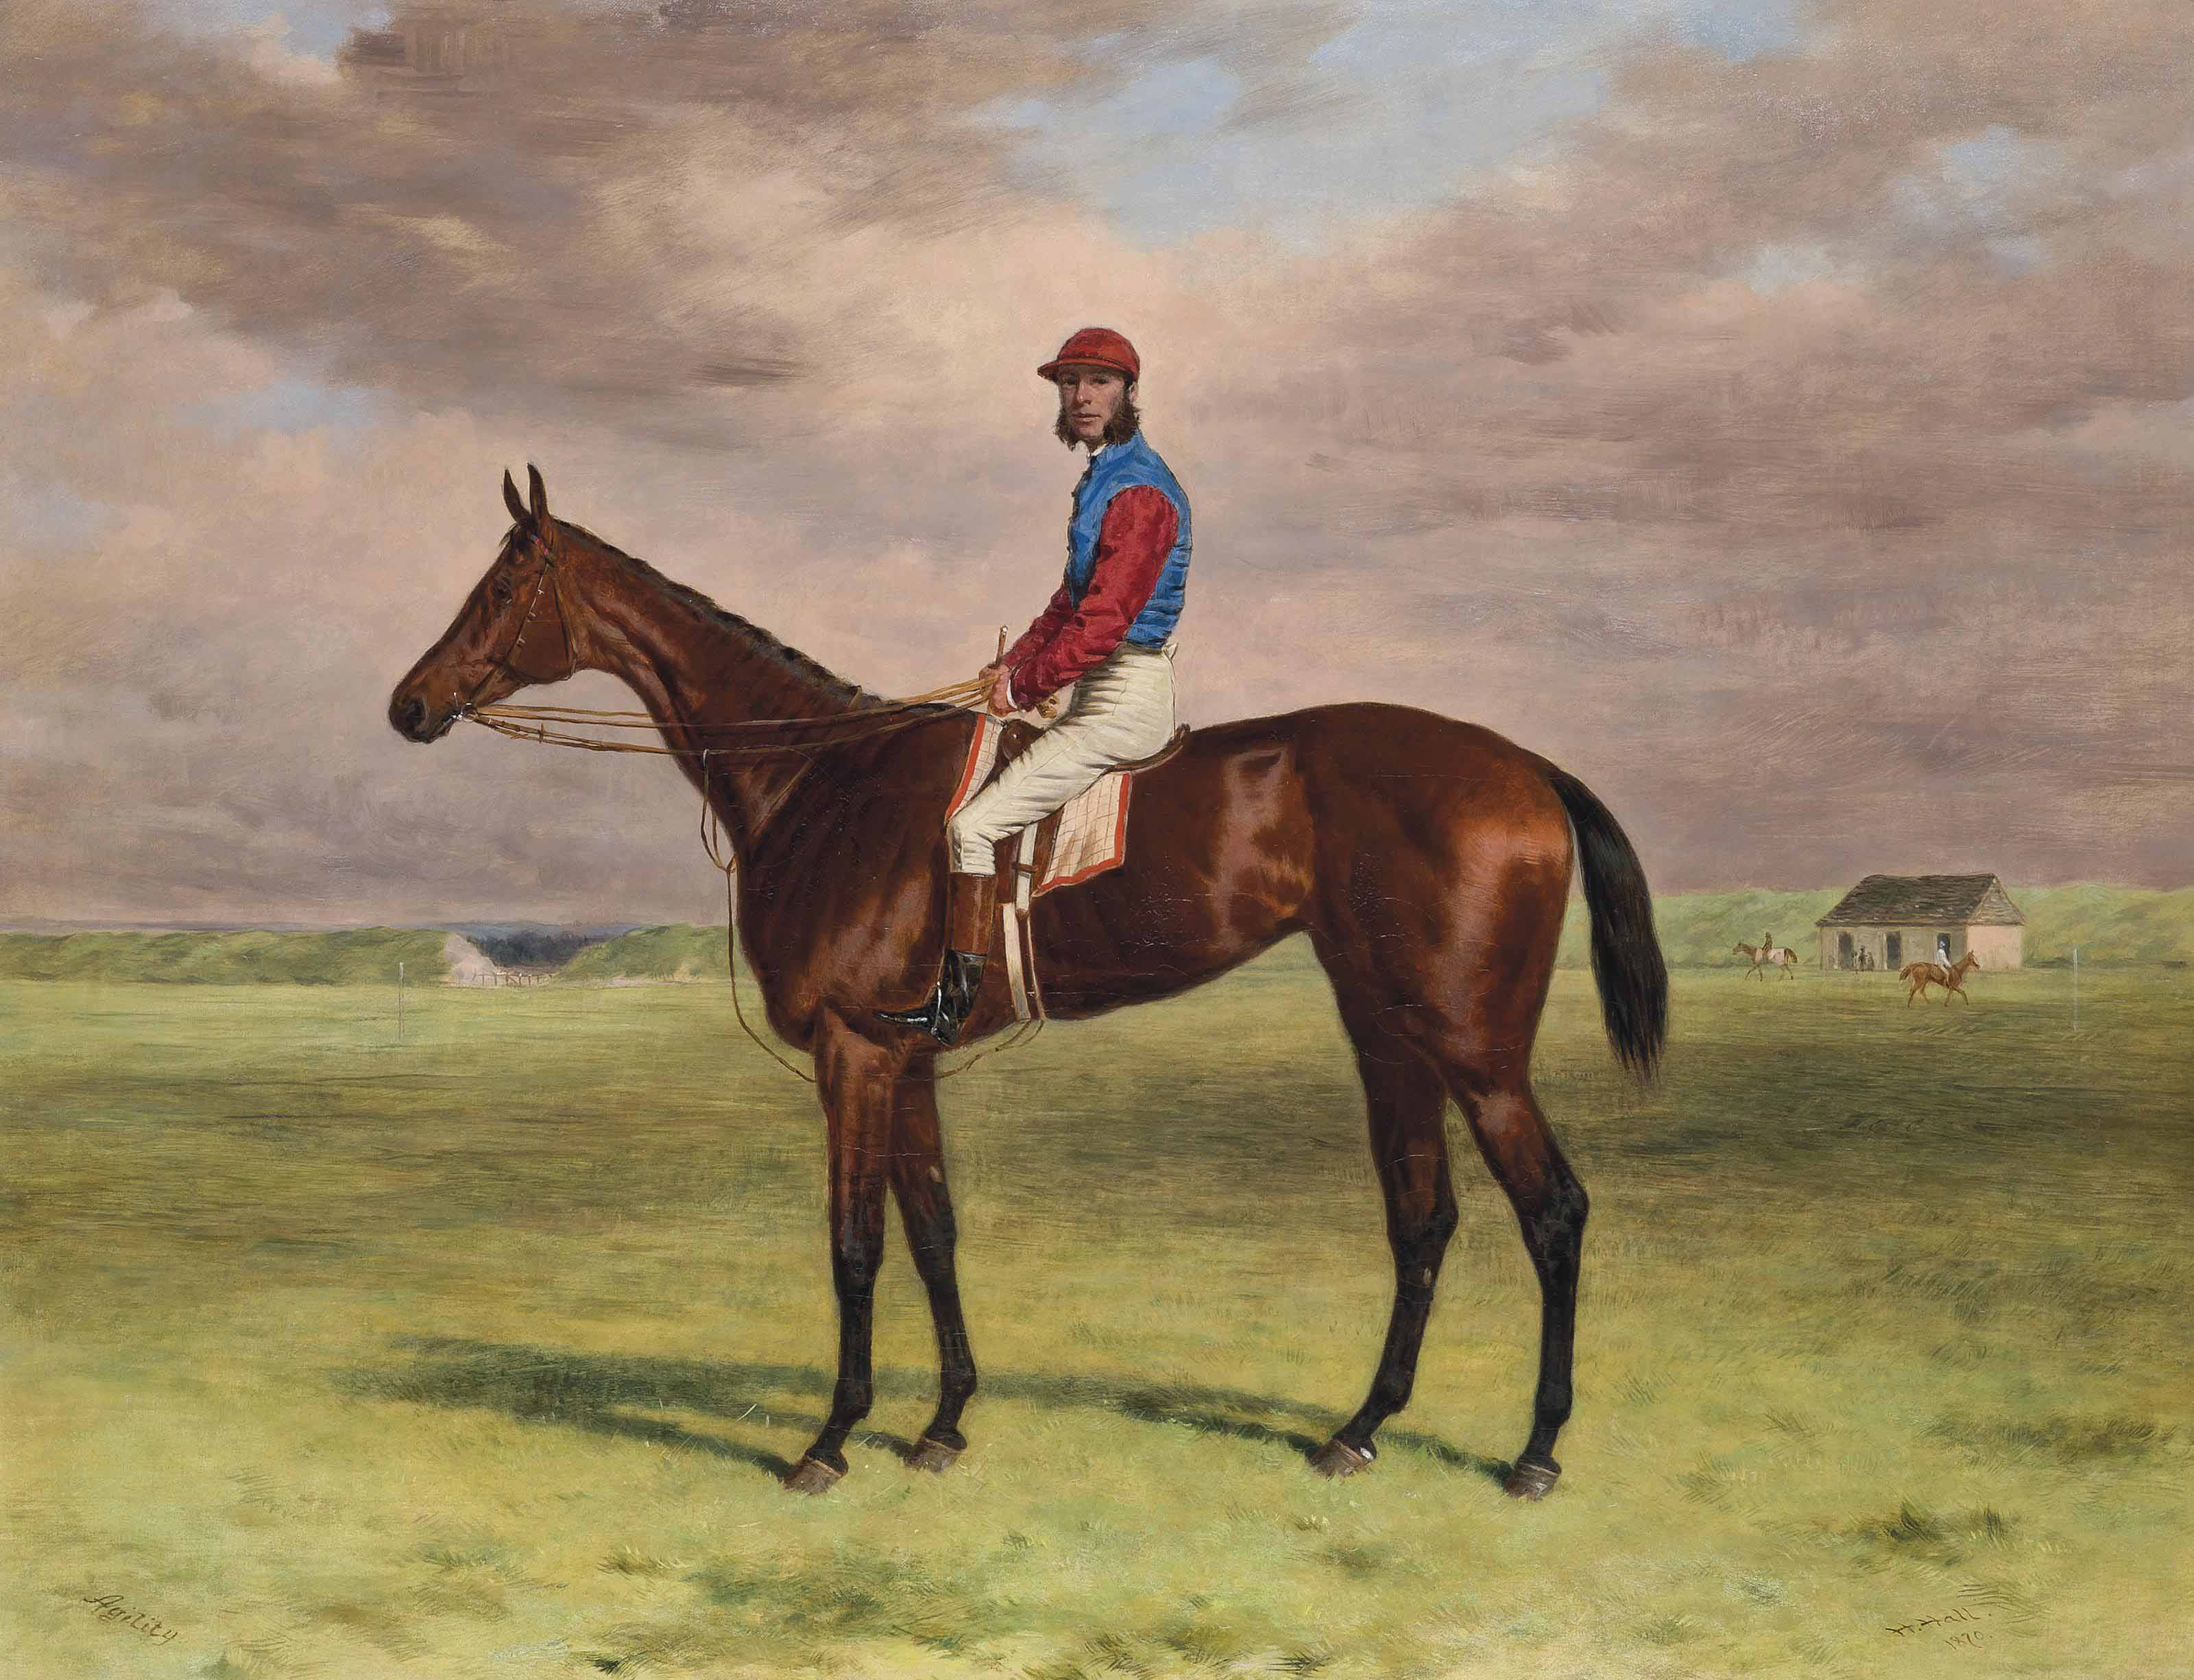 The Rev. John William King's ('Mr Launde's') bay filly Agility with jockey up at Newmarket